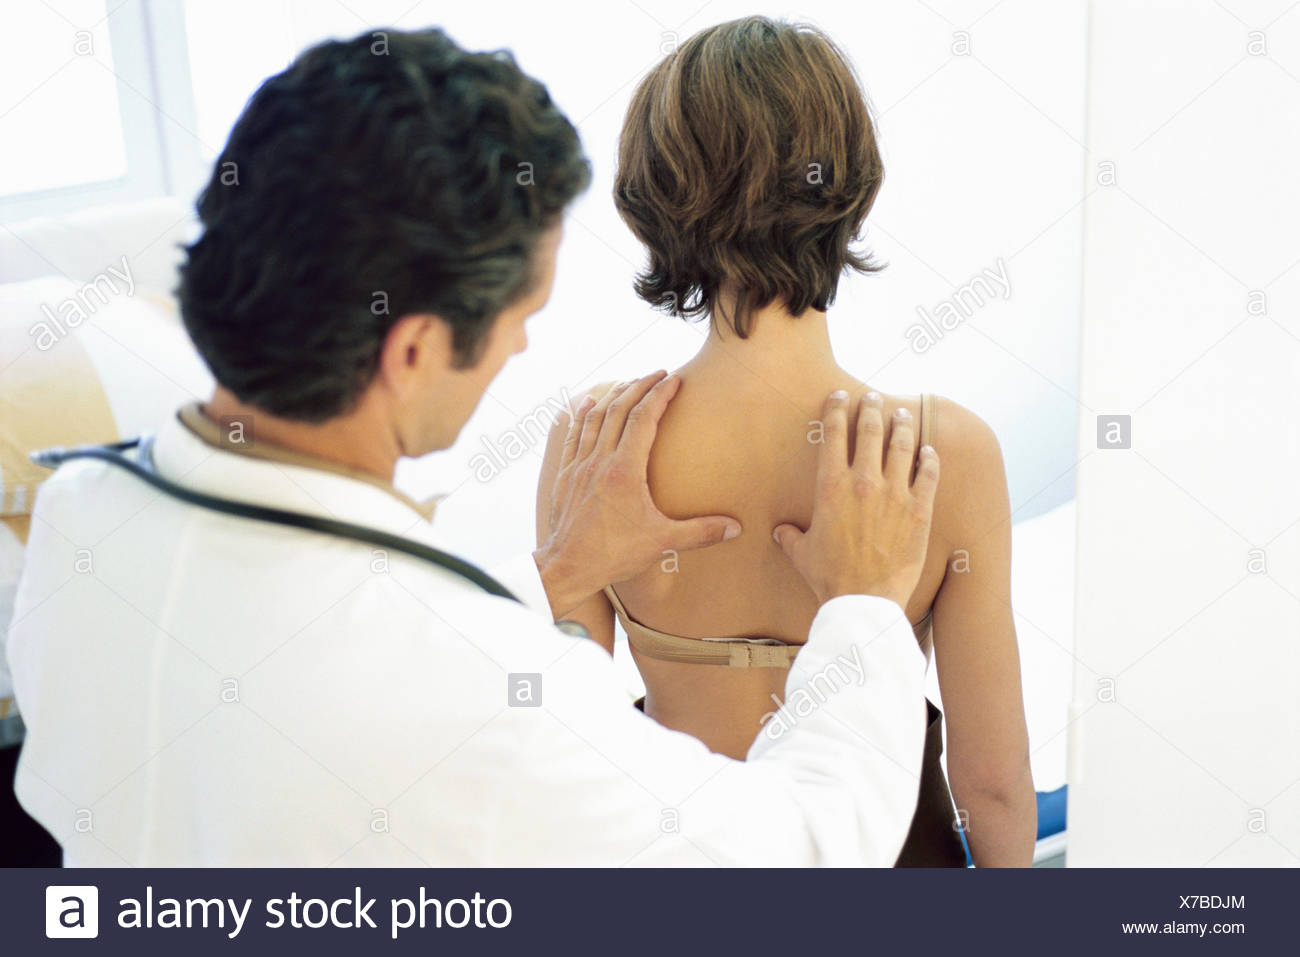 View of a male doctor checking a young woman's lungs - Stock Image